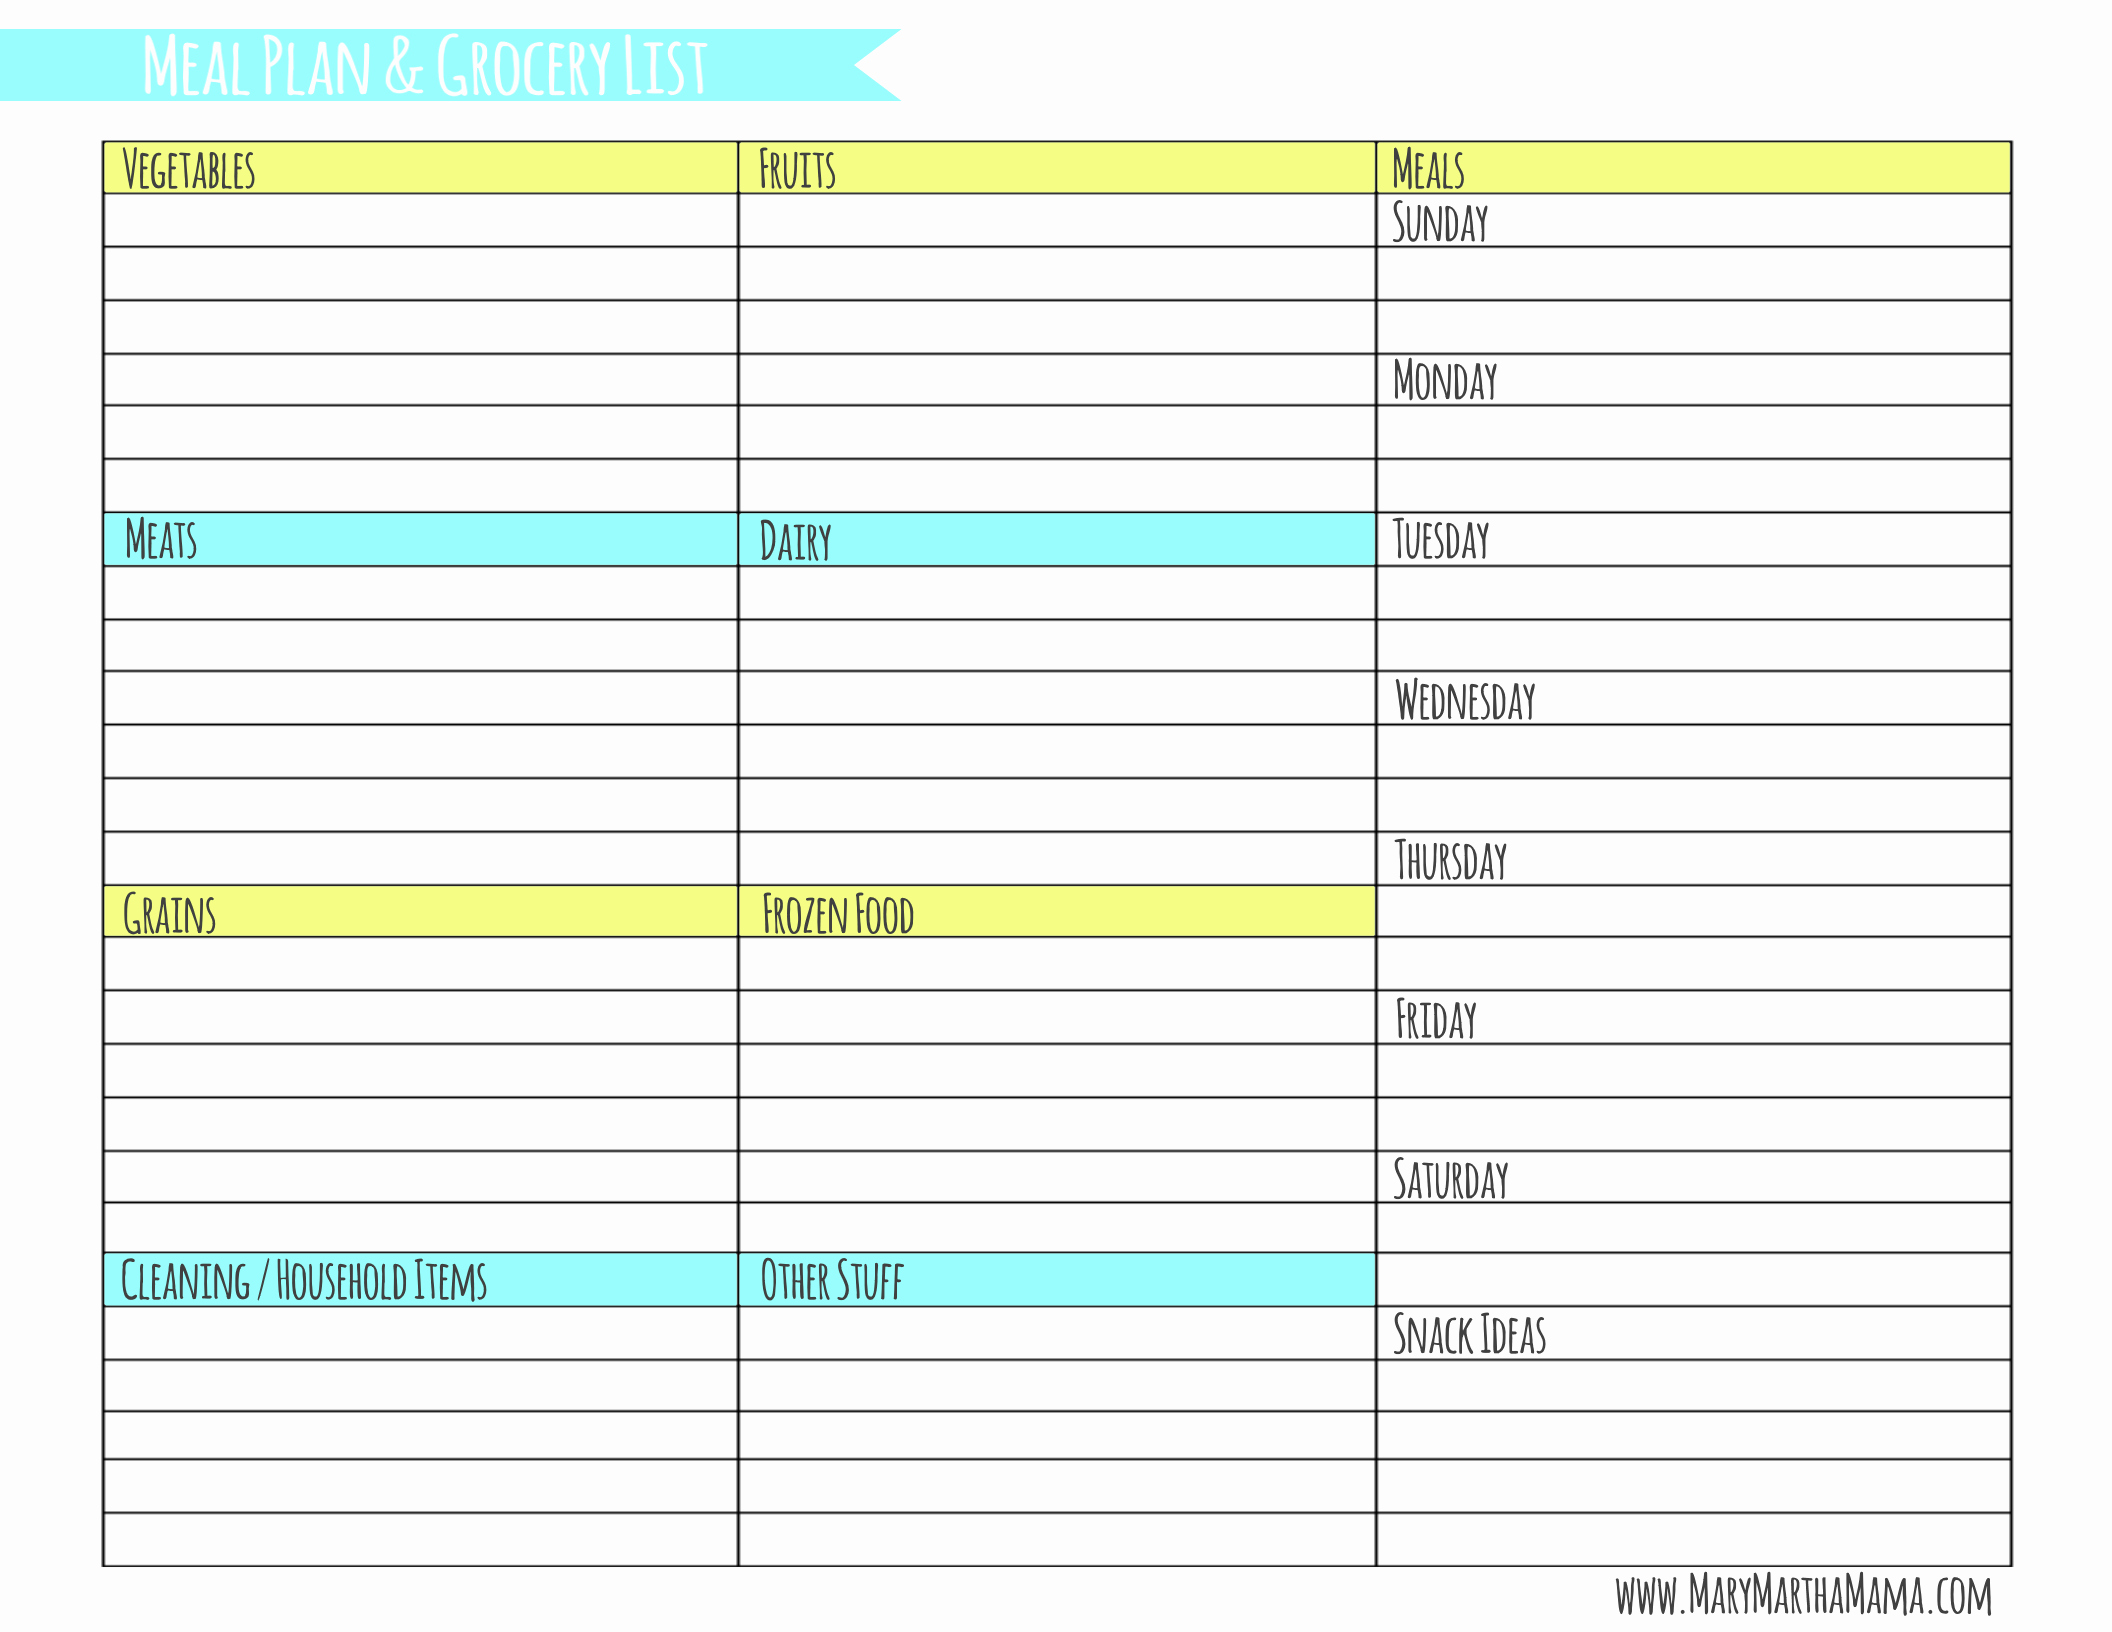 Meal Plan Spreadsheet Template Beautiful Weekly Meal Planner Template with Grocery List – Mary